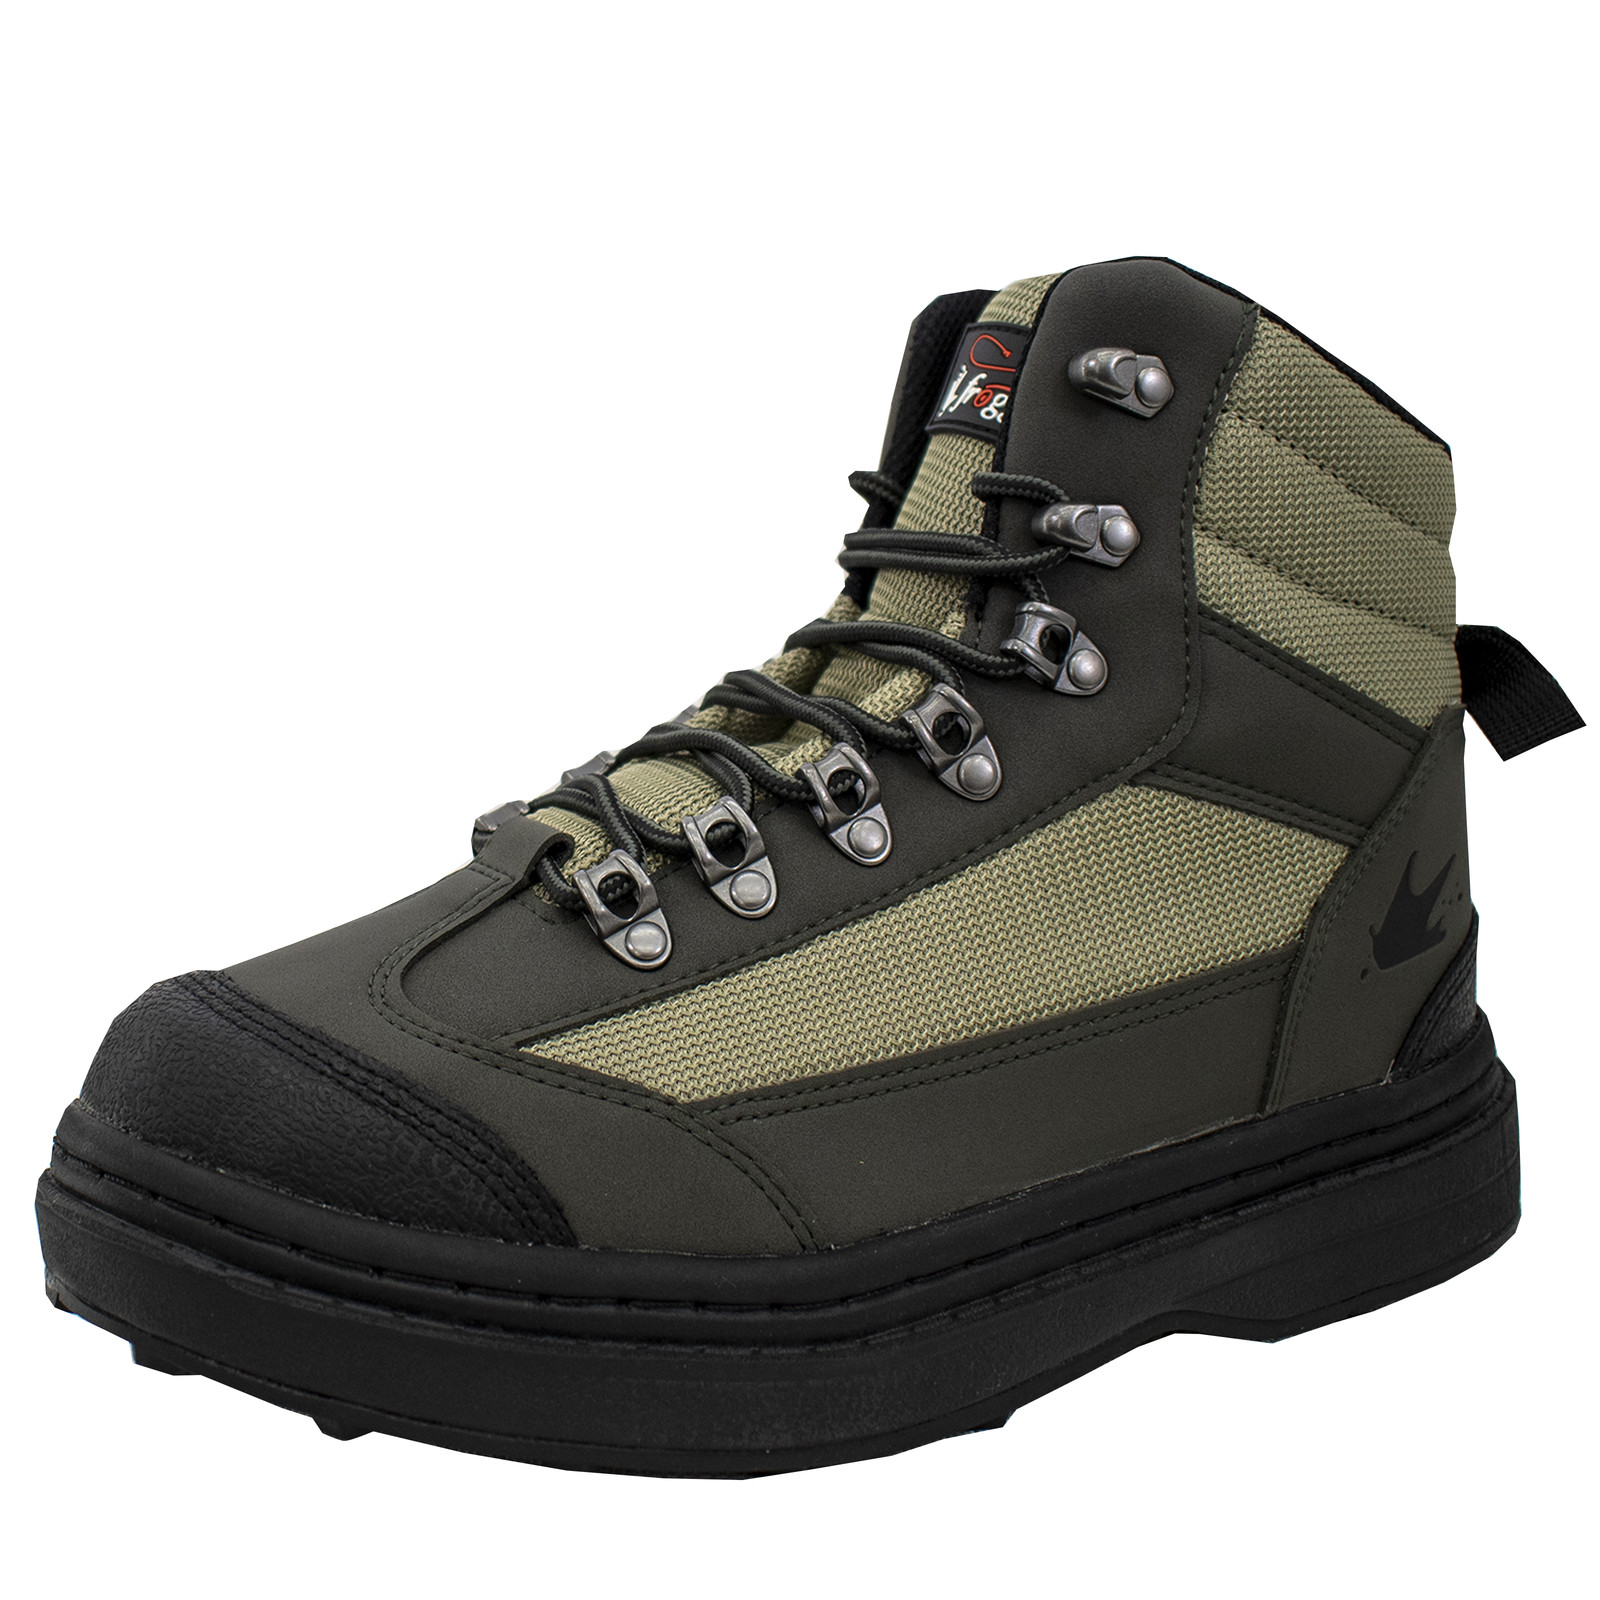 Men's Hellbender Wading Shoe - Cleated | Green / Silver / Black-large